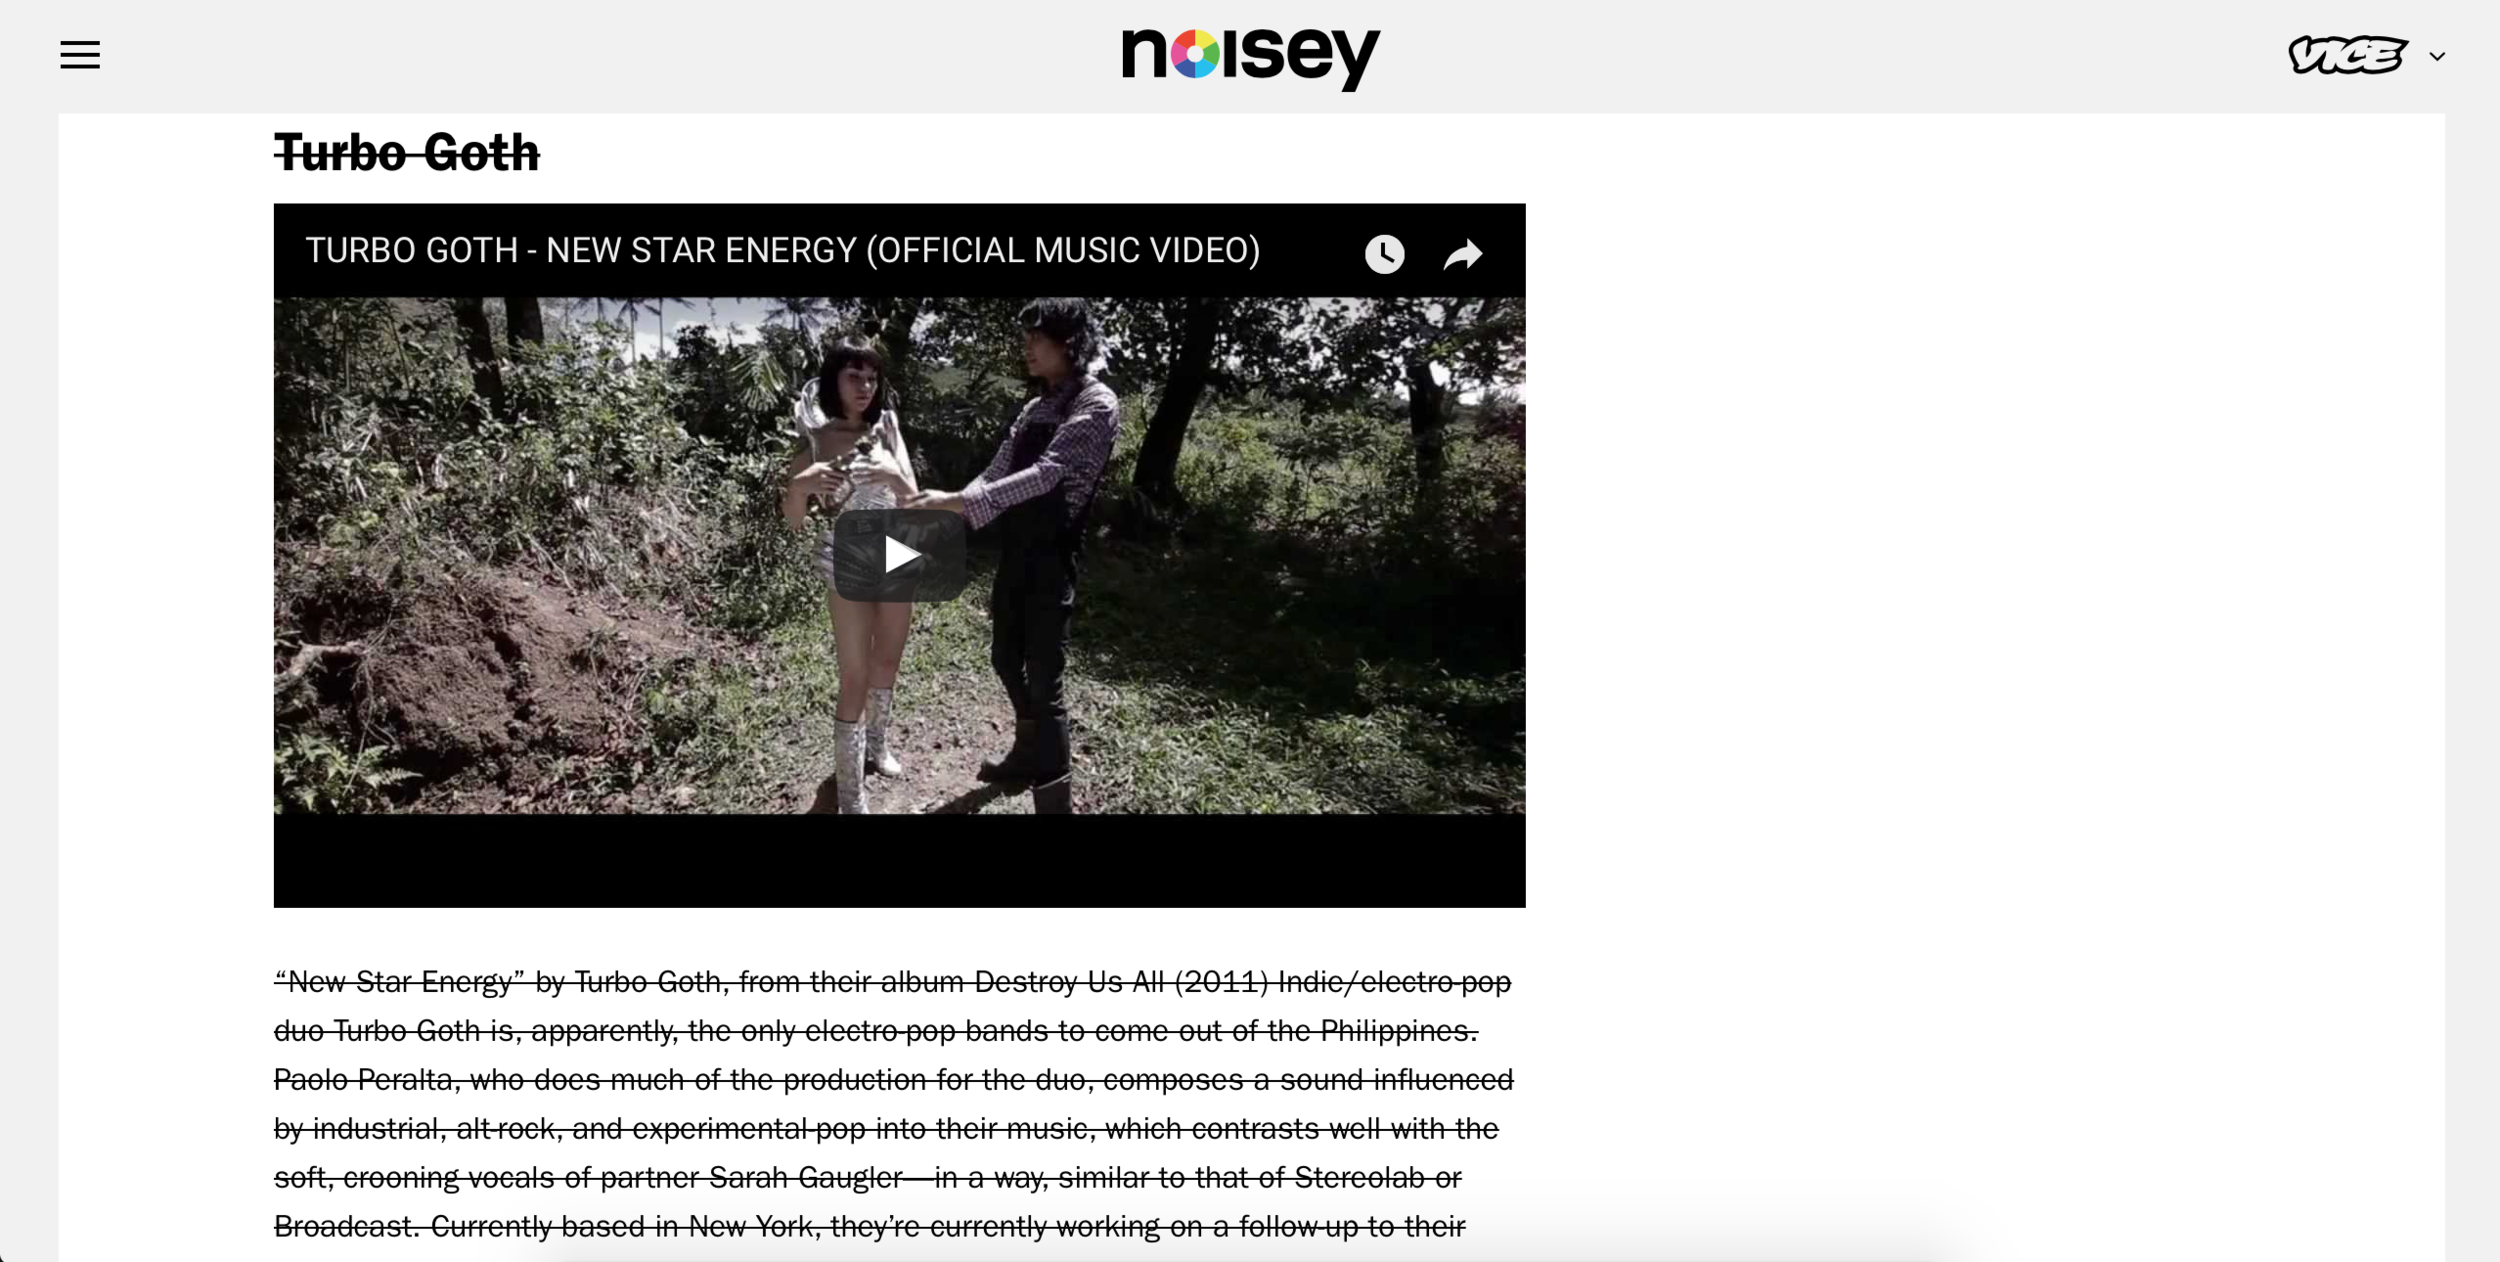 Noisey.vice.com